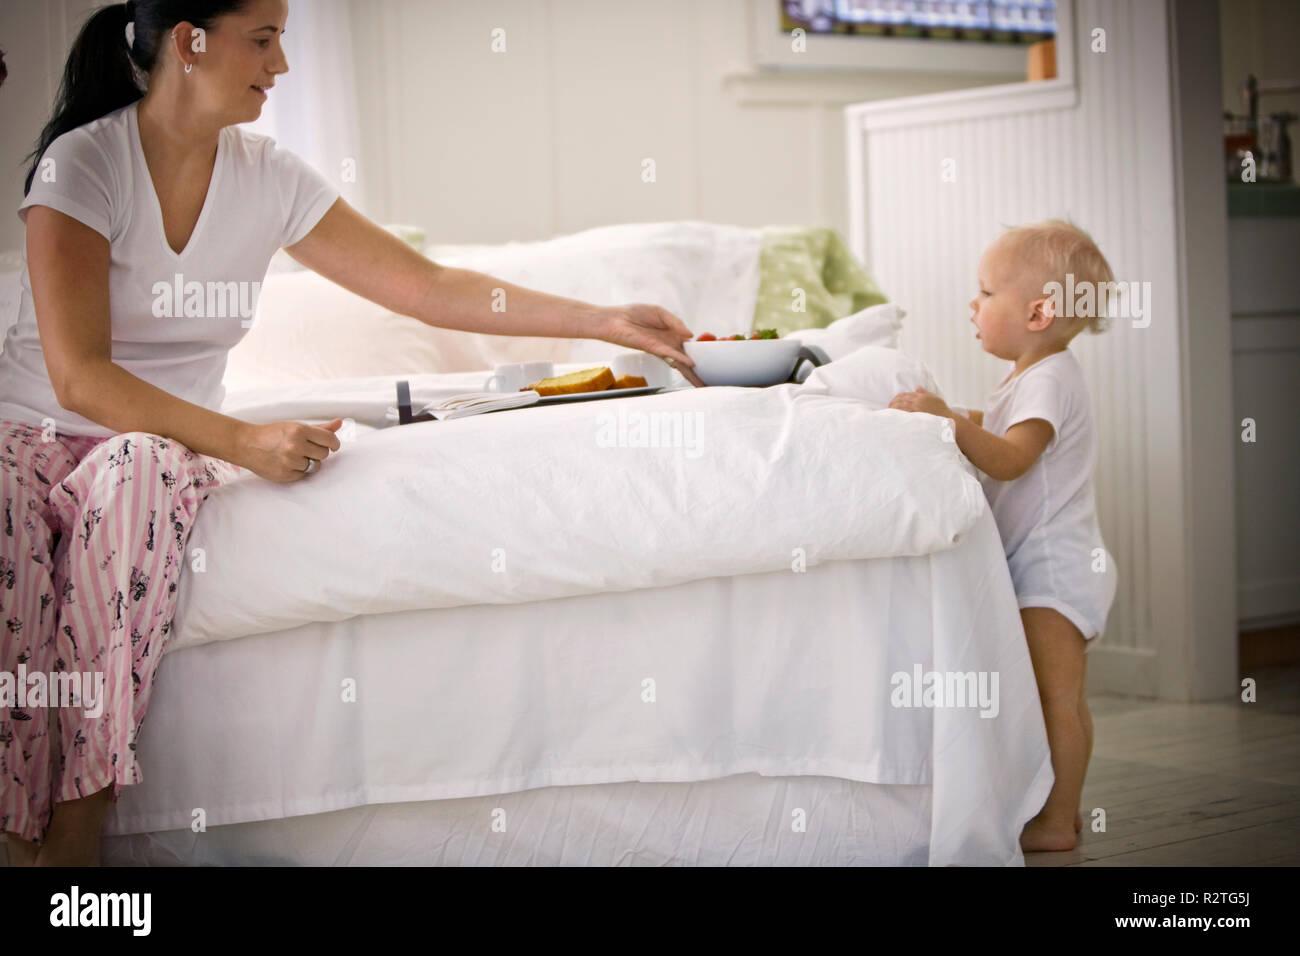 Mid-adult woman sitting on a bed with breakfast while her toddler son looks on. - Stock Image